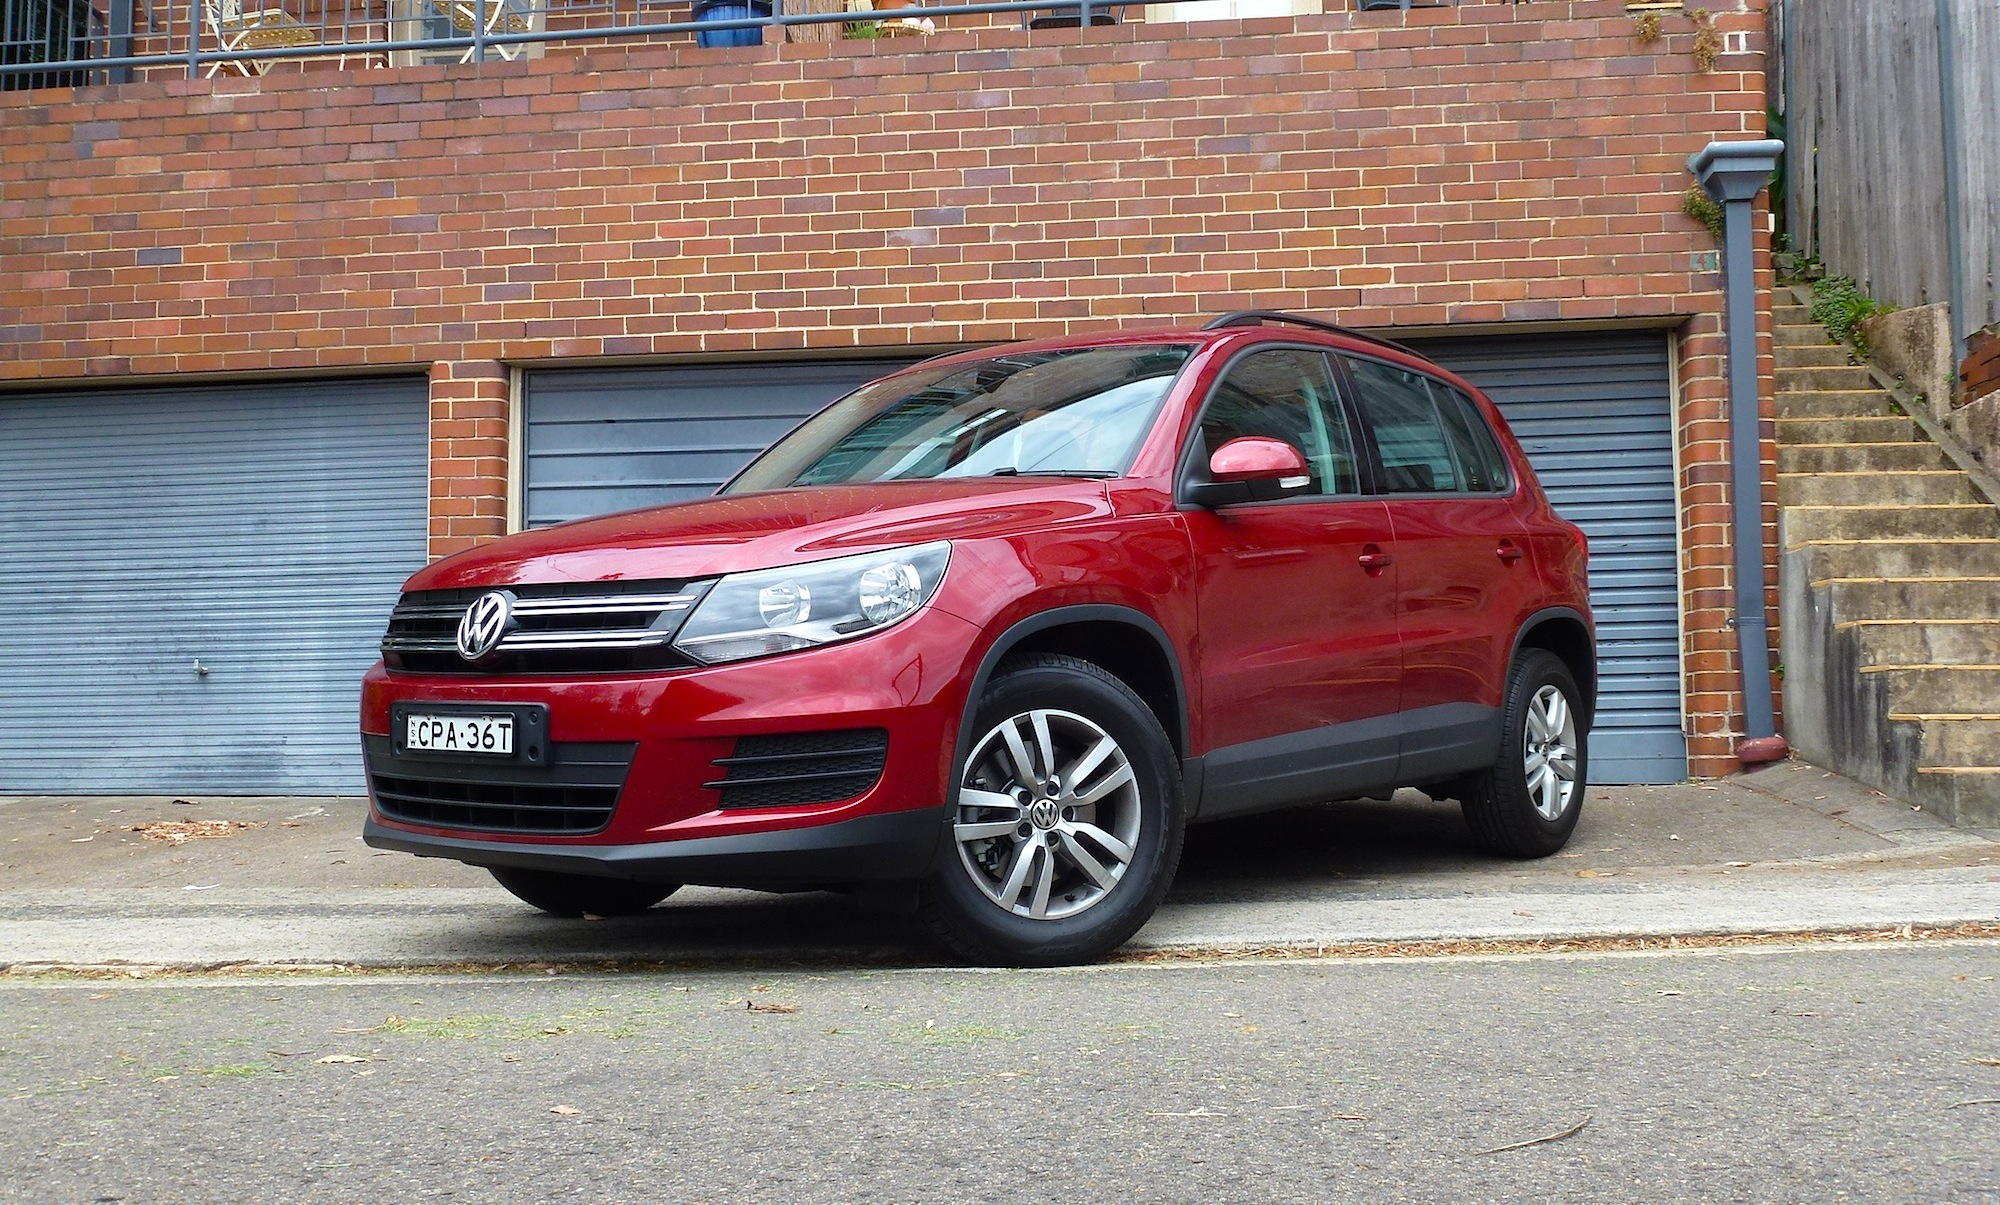 2014 volkswagen tiguan review 118tsi dsg caradvice. Black Bedroom Furniture Sets. Home Design Ideas